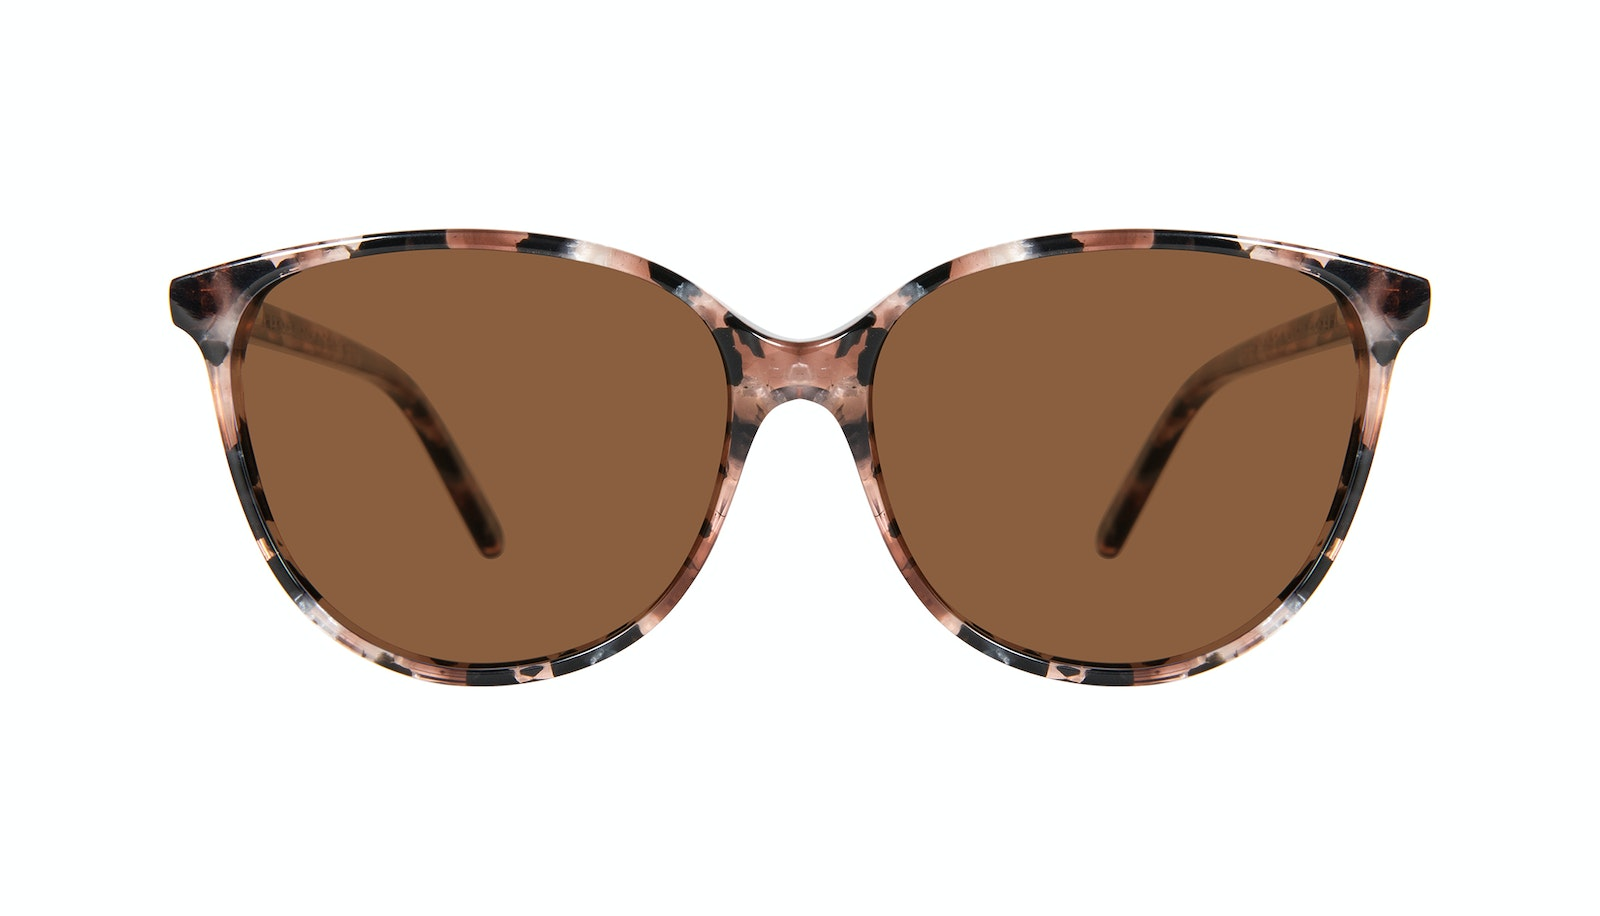 Affordable Fashion Glasses Cat Eye Sunglasses Women Imagine Pink Tortoise